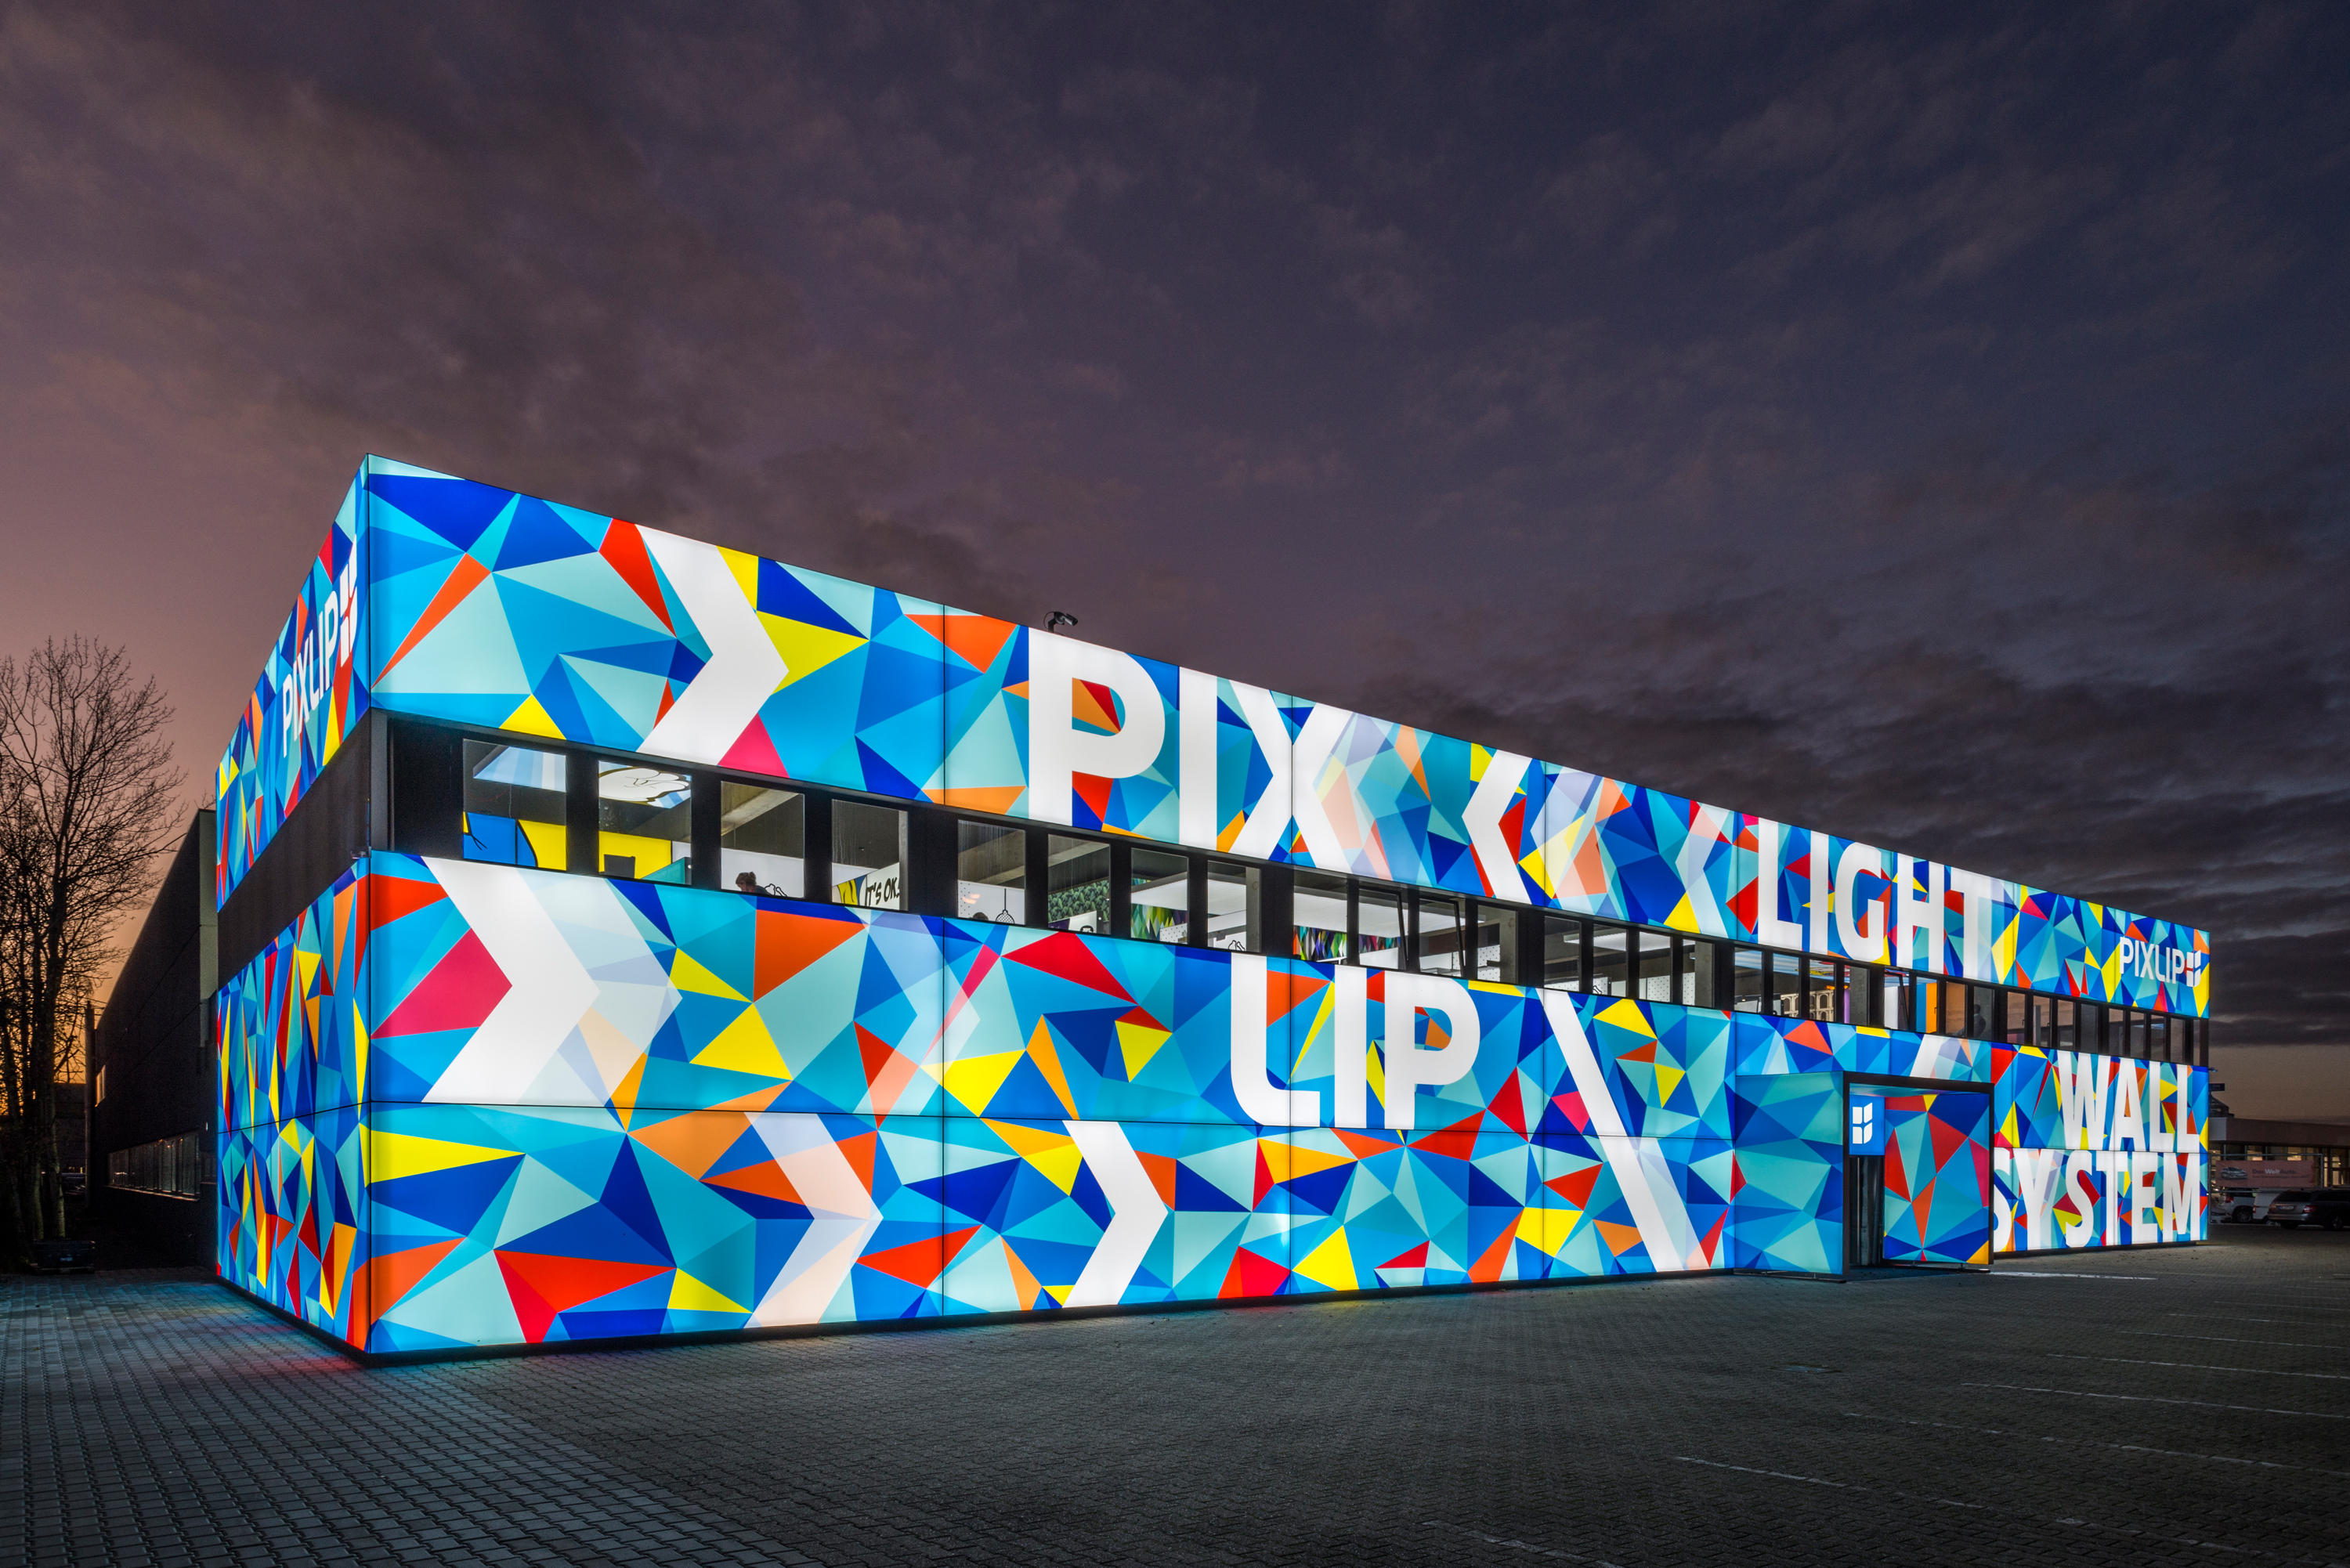 ILLUMINATED FRAME OUTDOOR - LED-lights from Pixlip | Architonic